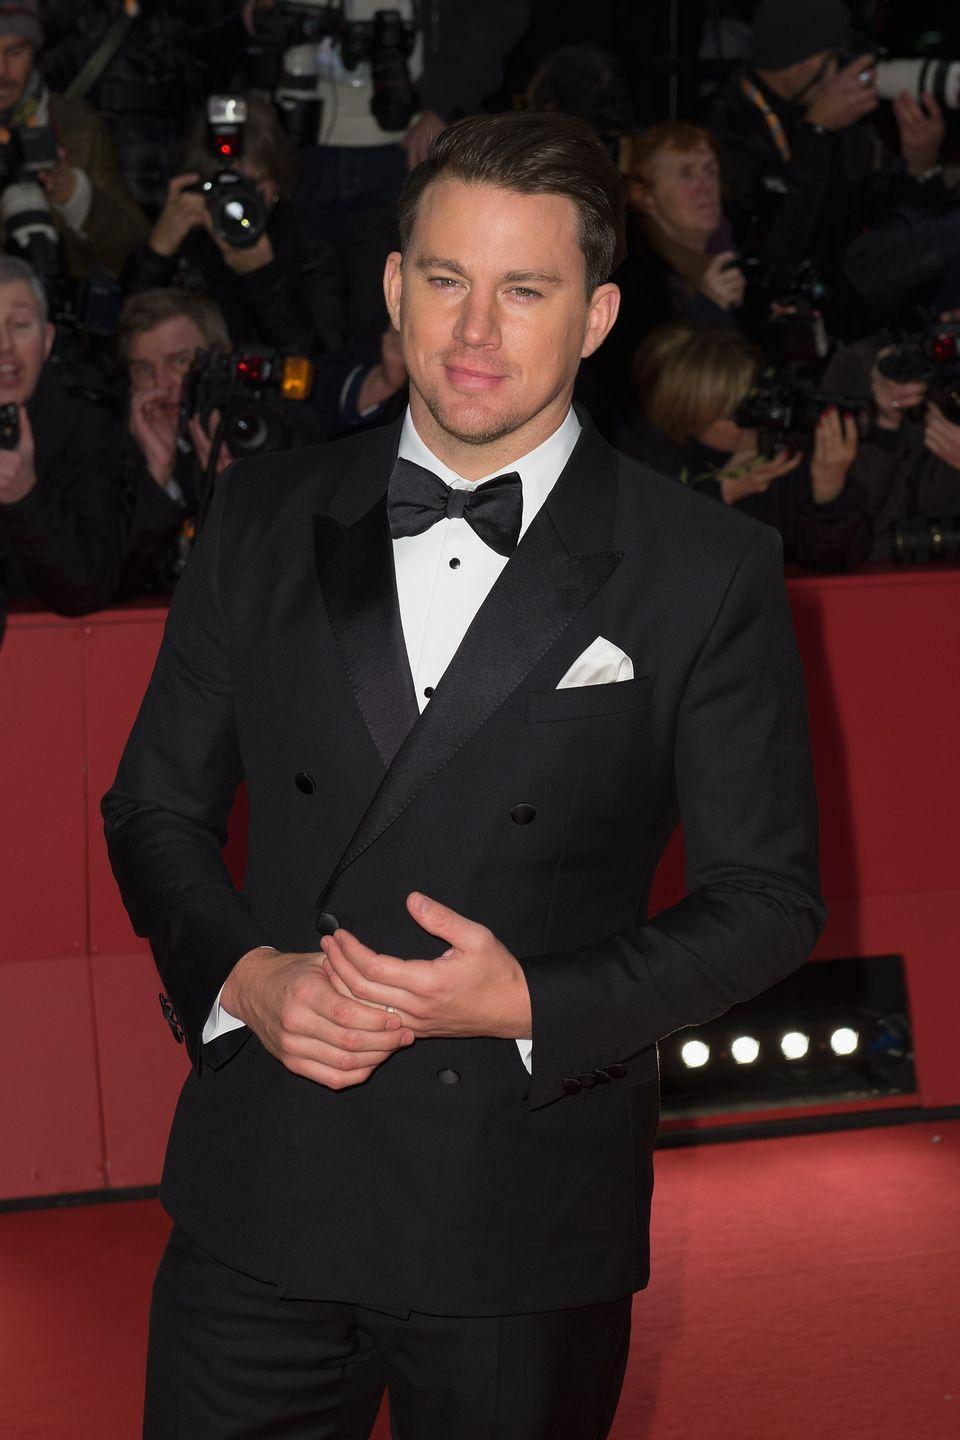 """<p>Super hunk <a href=""""https://www.delish.com/food/a42868/channing-tatums-weird-sandwich-obsession/"""" rel=""""nofollow noopener"""" target=""""_blank"""" data-ylk=""""slk:Channing Tatum"""" class=""""link rapid-noclick-resp"""">Channing Tatum</a> once confessed that his all-time favorite sandwich is the classic peanut butter and jelly sandwich with a totally random extra ingredient. On Reddit he wrote, """"Bread, white. Peanut butter—not crunchy, creamy. Grape jelly—double portion, more than you think should actually fit on a piece of white bread. Bread. And then some Cheetos shoved in there, and then you're good to go."""" </p>"""